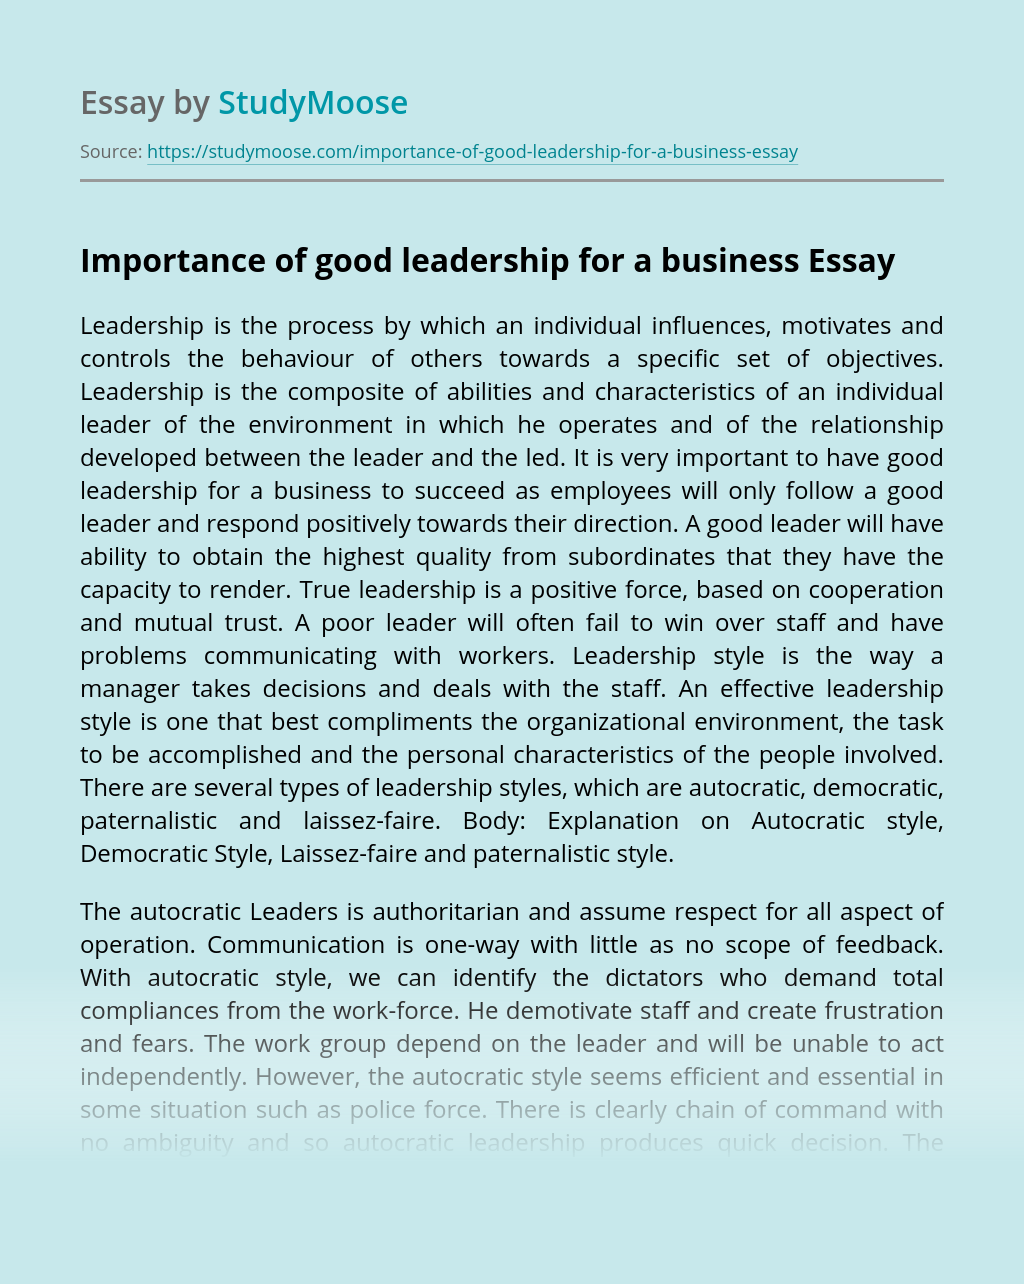 Importance of good leadership for a business